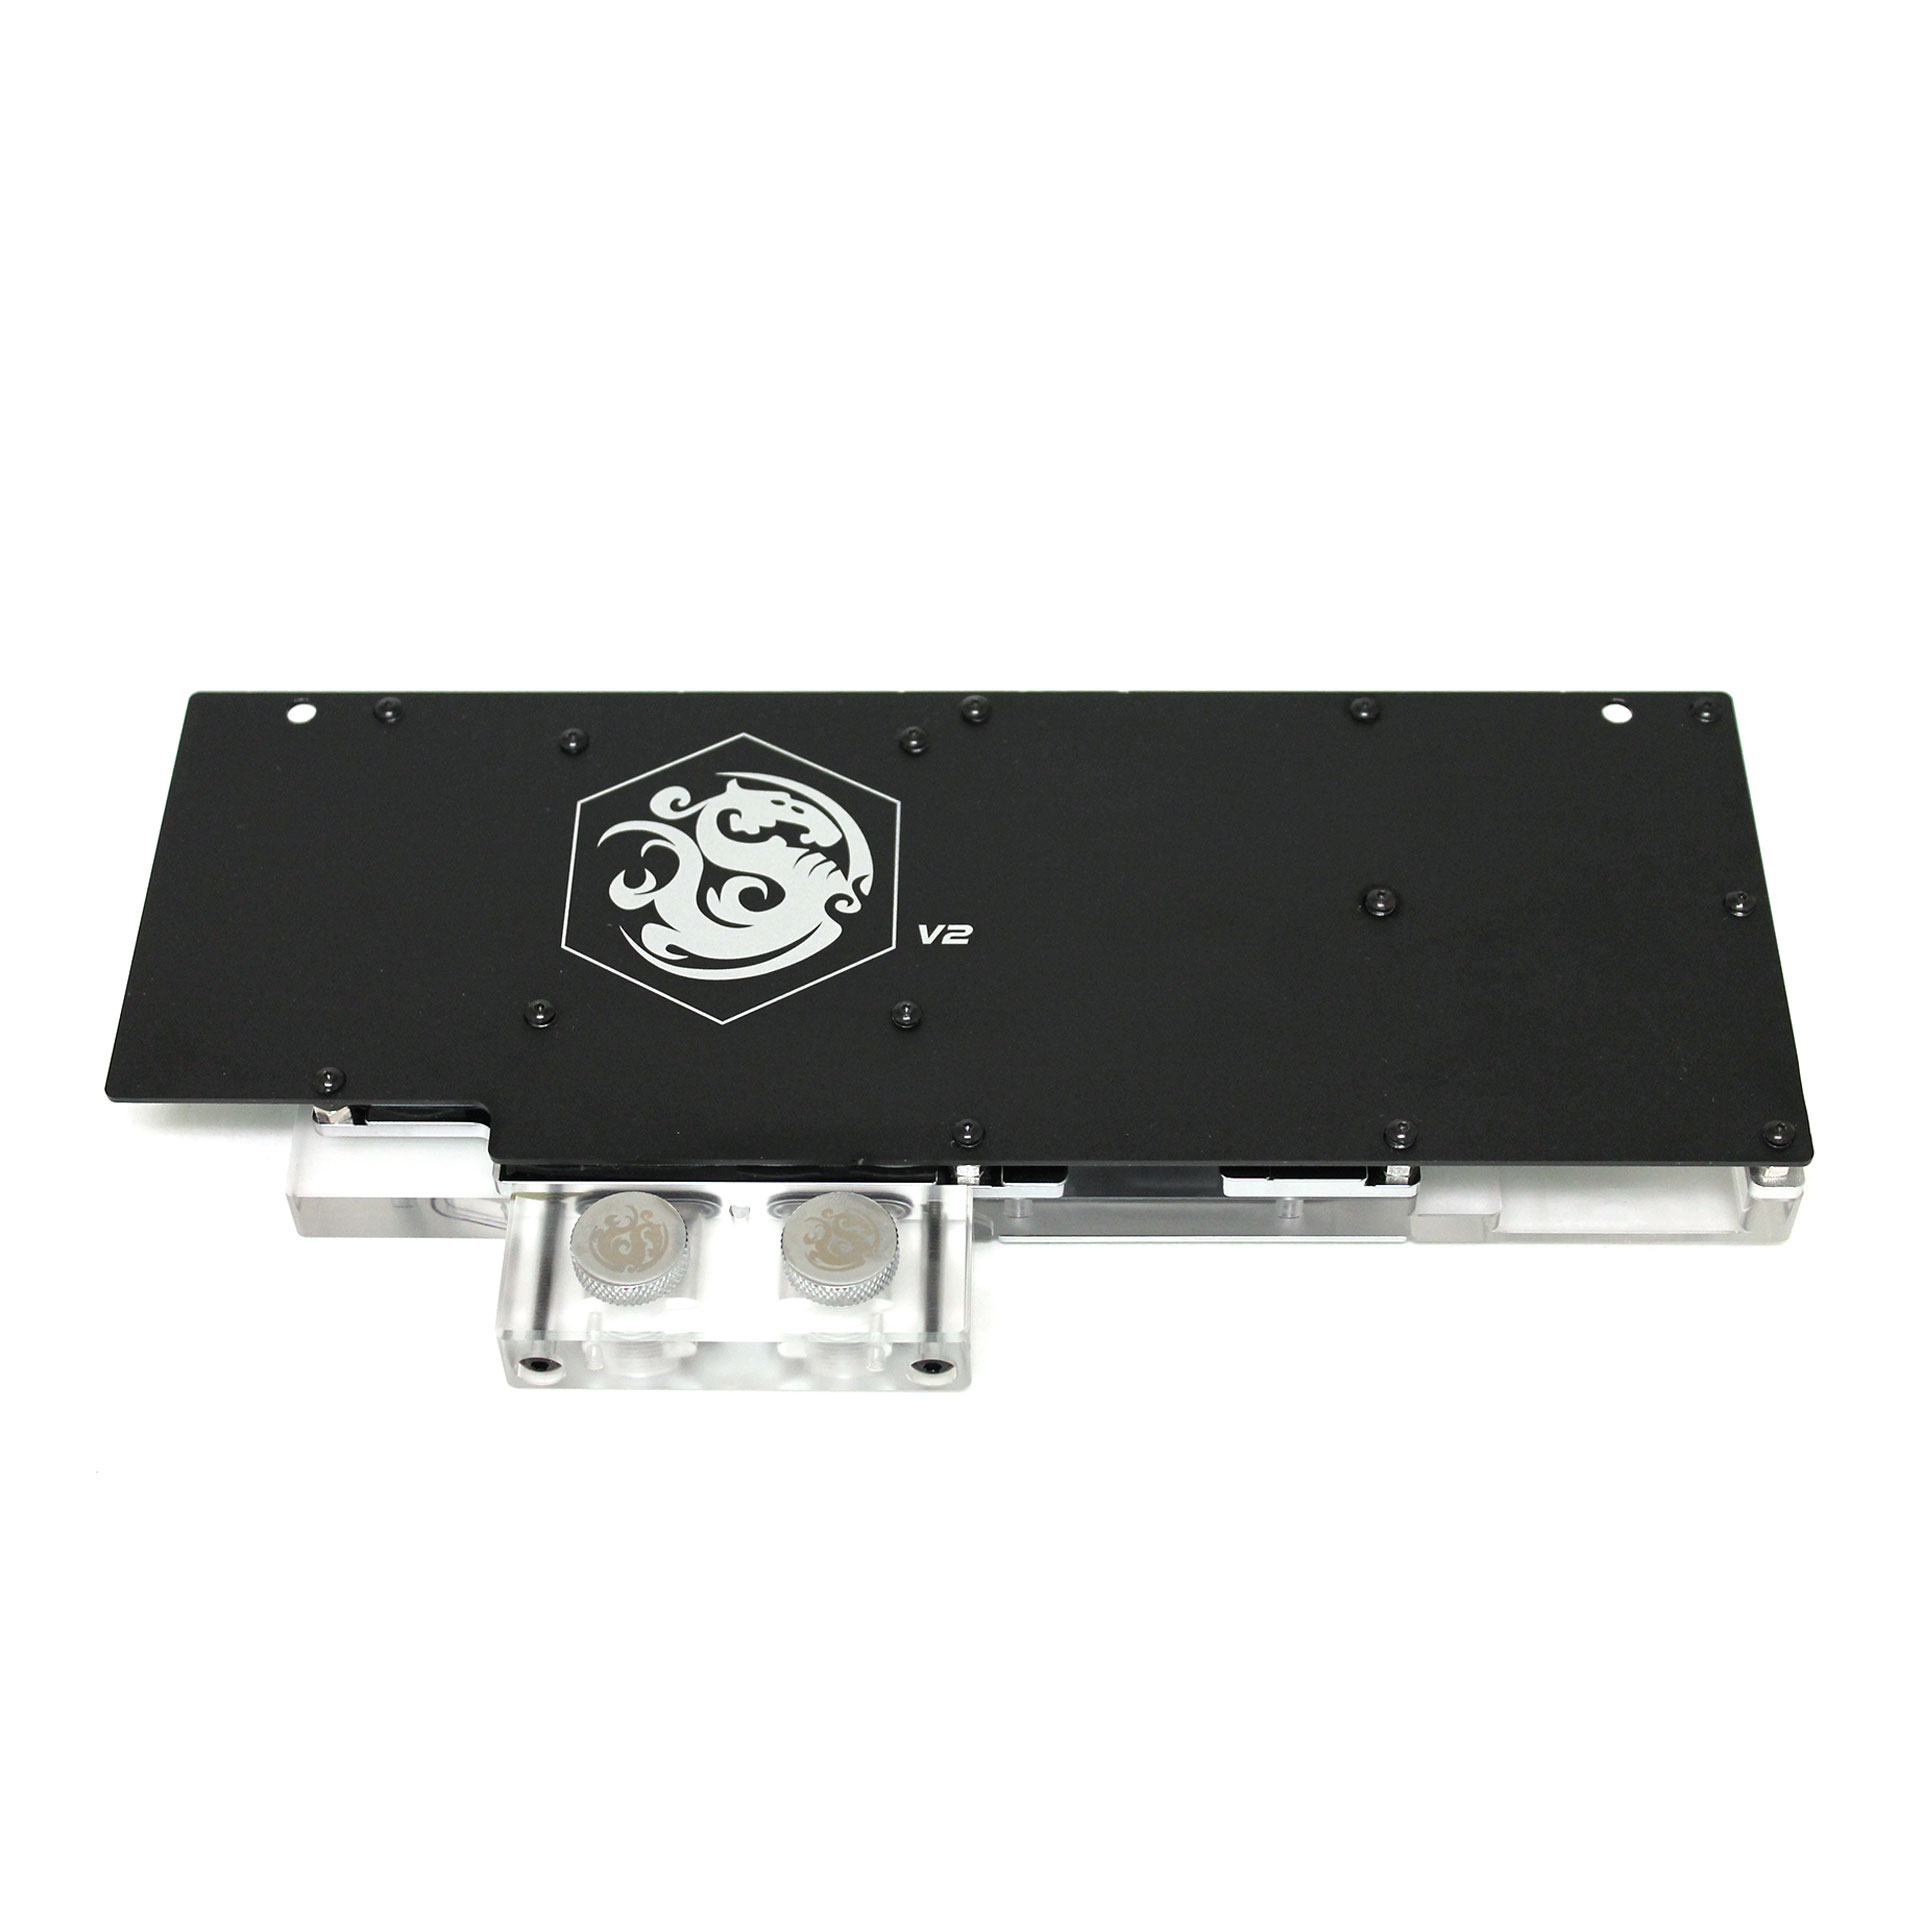 Bitspower VG-NGTXTITANX Water Block & Nickel Backplate TITAN X